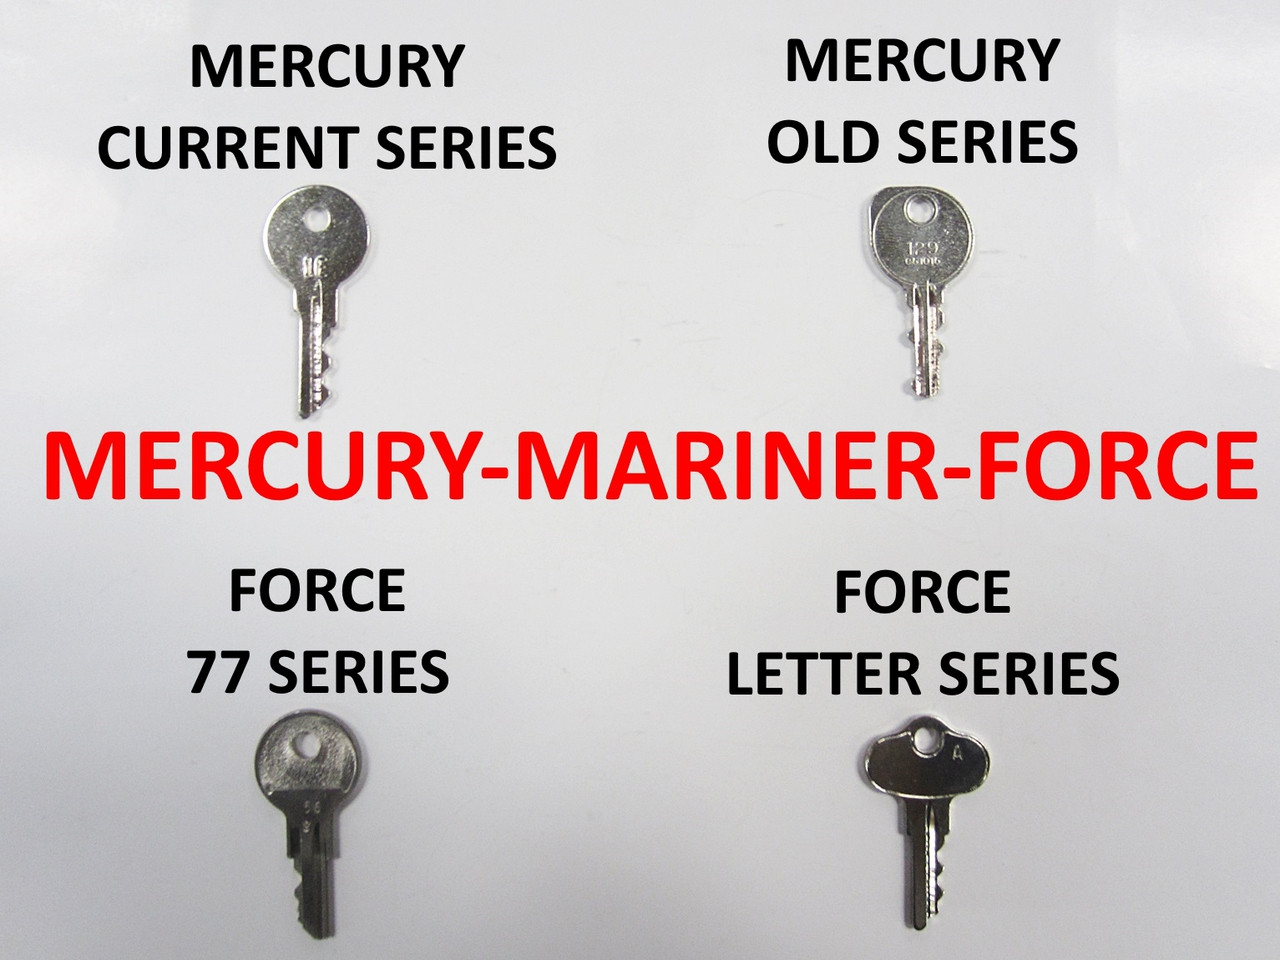 mercury mariner force oem outboard motor ignition keys image 1 [ 1280 x 960 Pixel ]